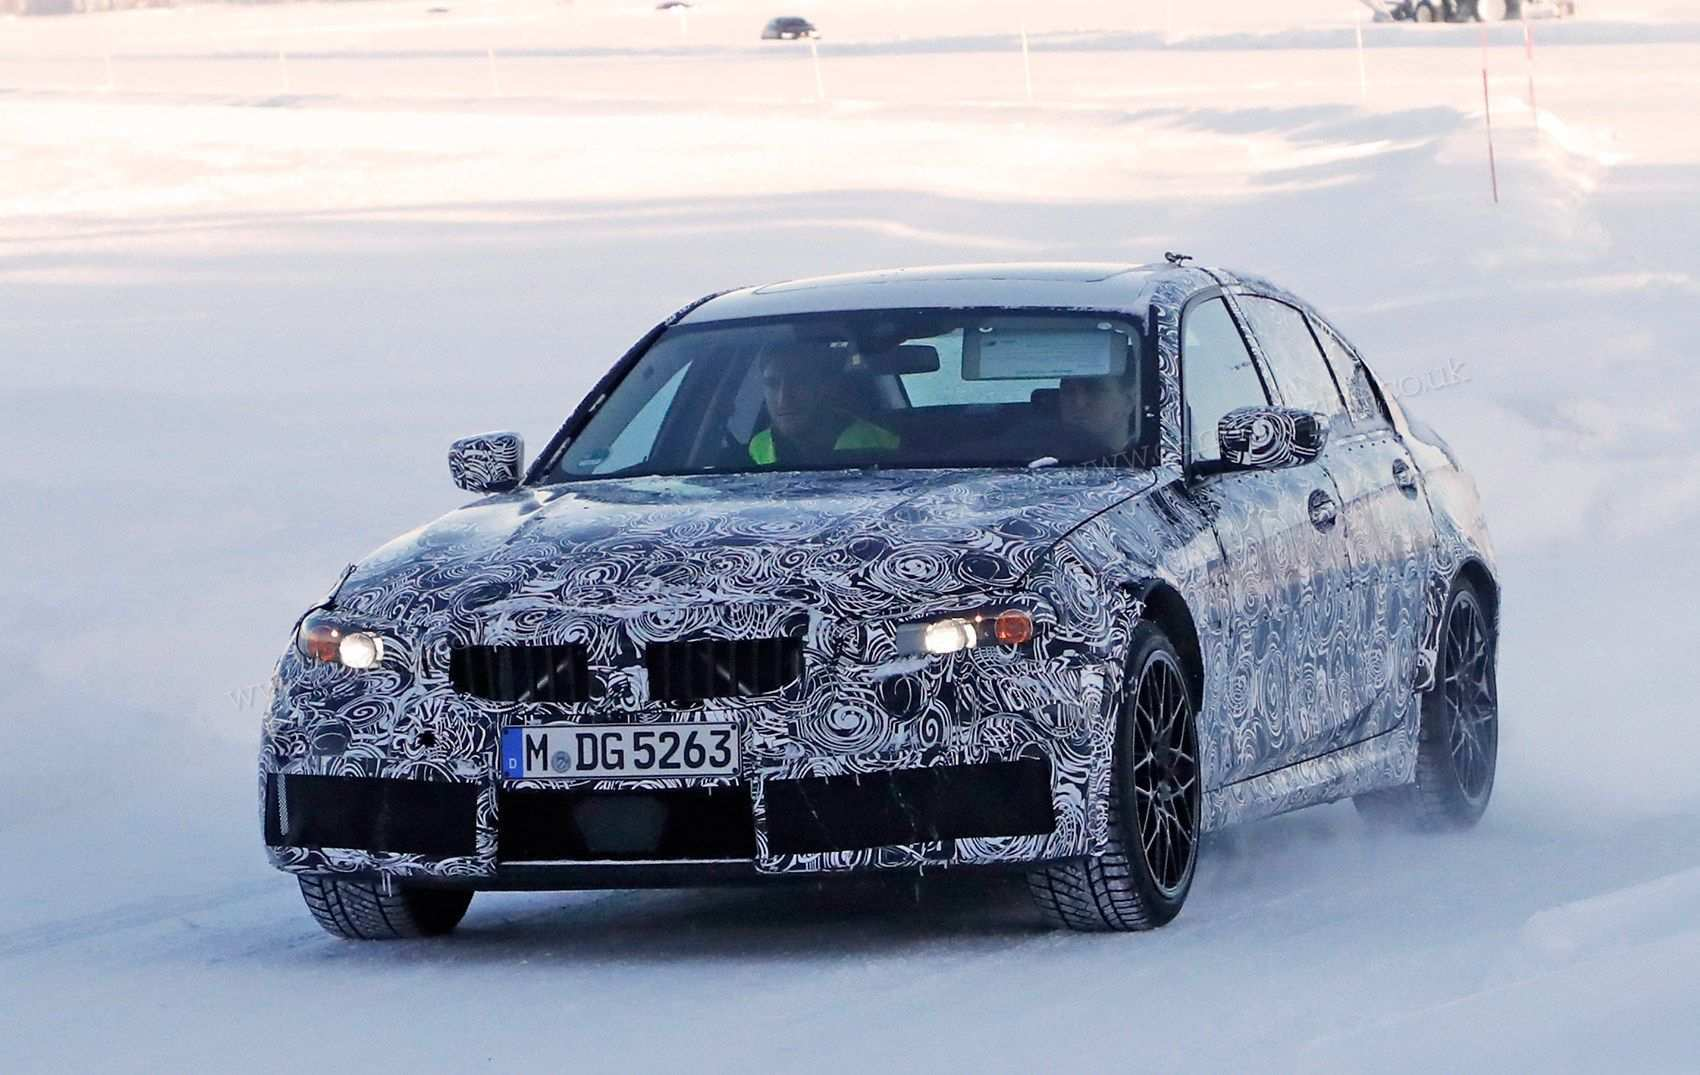 69 New 2020 Spy Shots BMW 3 Series Specs And Review